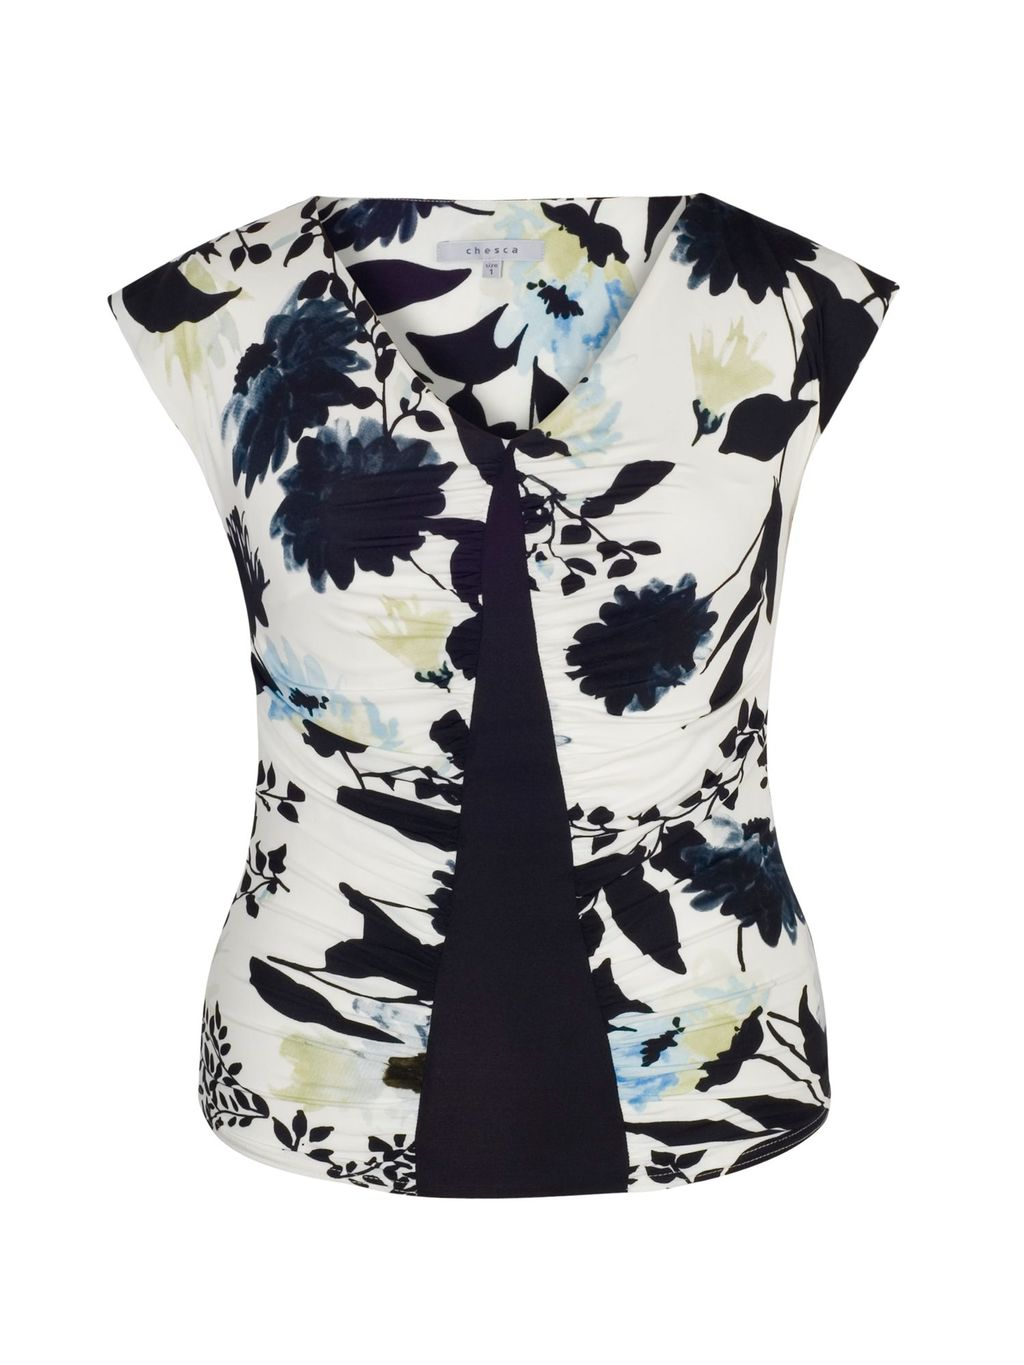 Floral Print Camisole With Navy Trim, Ivory - neckline: v-neck; sleeve style: capped; secondary colour: white; predominant colour: navy; occasions: casual, creative work; length: standard; style: top; fibres: polyester/polyamide - 100%; fit: body skimming; sleeve length: sleeveless; texture group: crepes; pattern type: fabric; pattern: patterned/print; pattern size: big & busy (top); multicoloured: multicoloured; season: s/s 2016; wardrobe: highlight